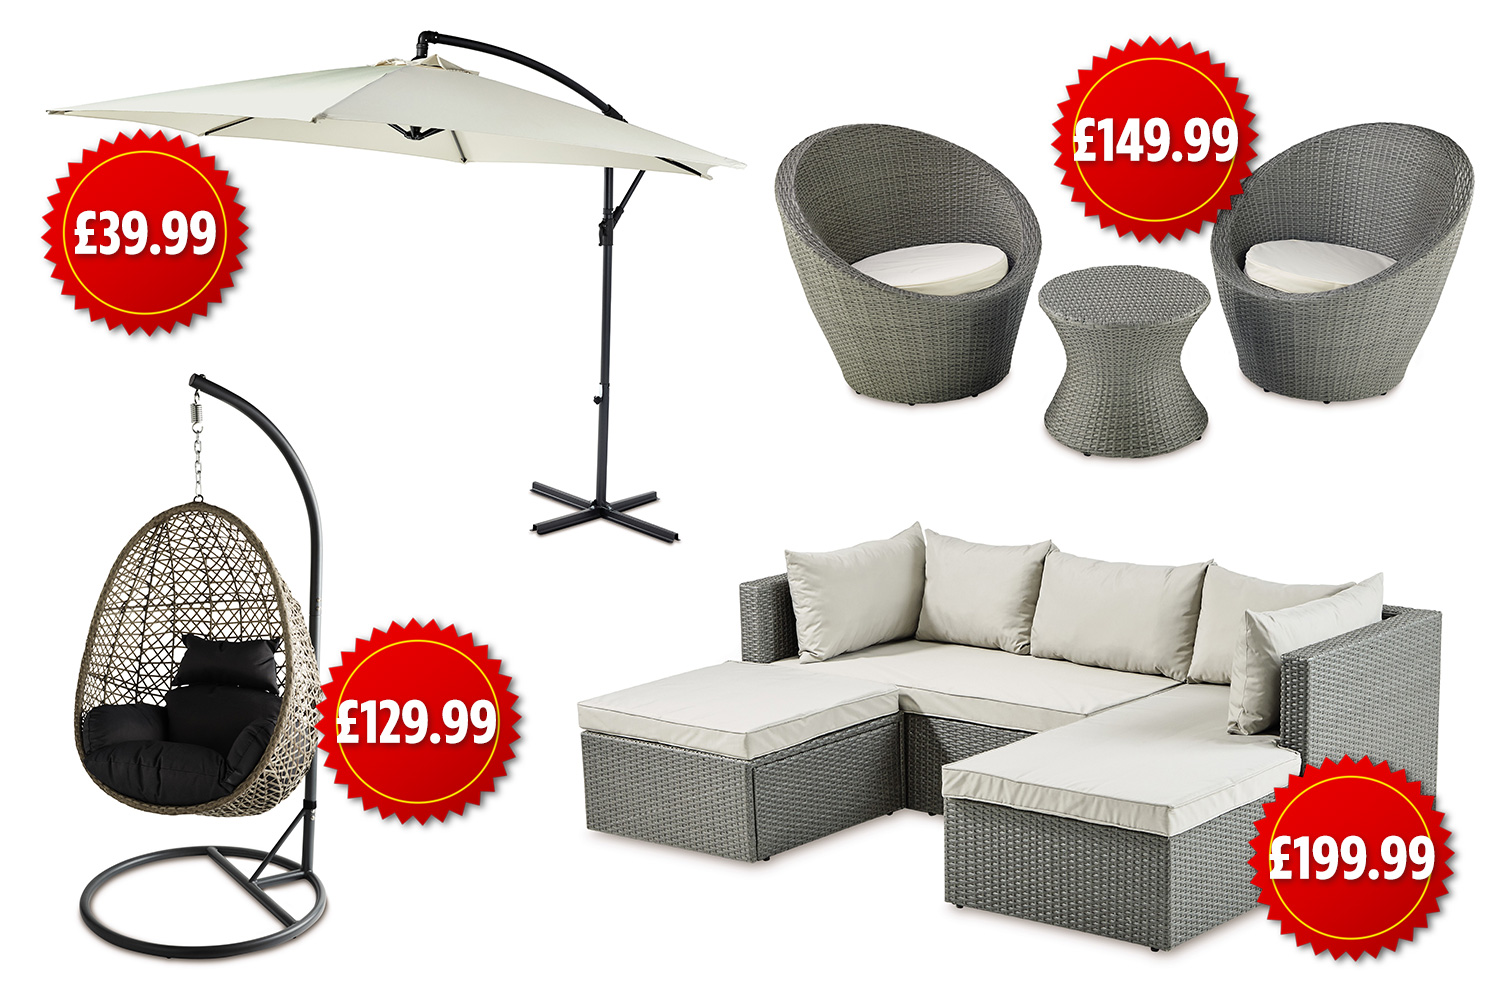 Owen 5 Piece Rattan Sofa Set With Cushions Aldi Selling Beautiful Garden Furniture For A Quarter The Price Of